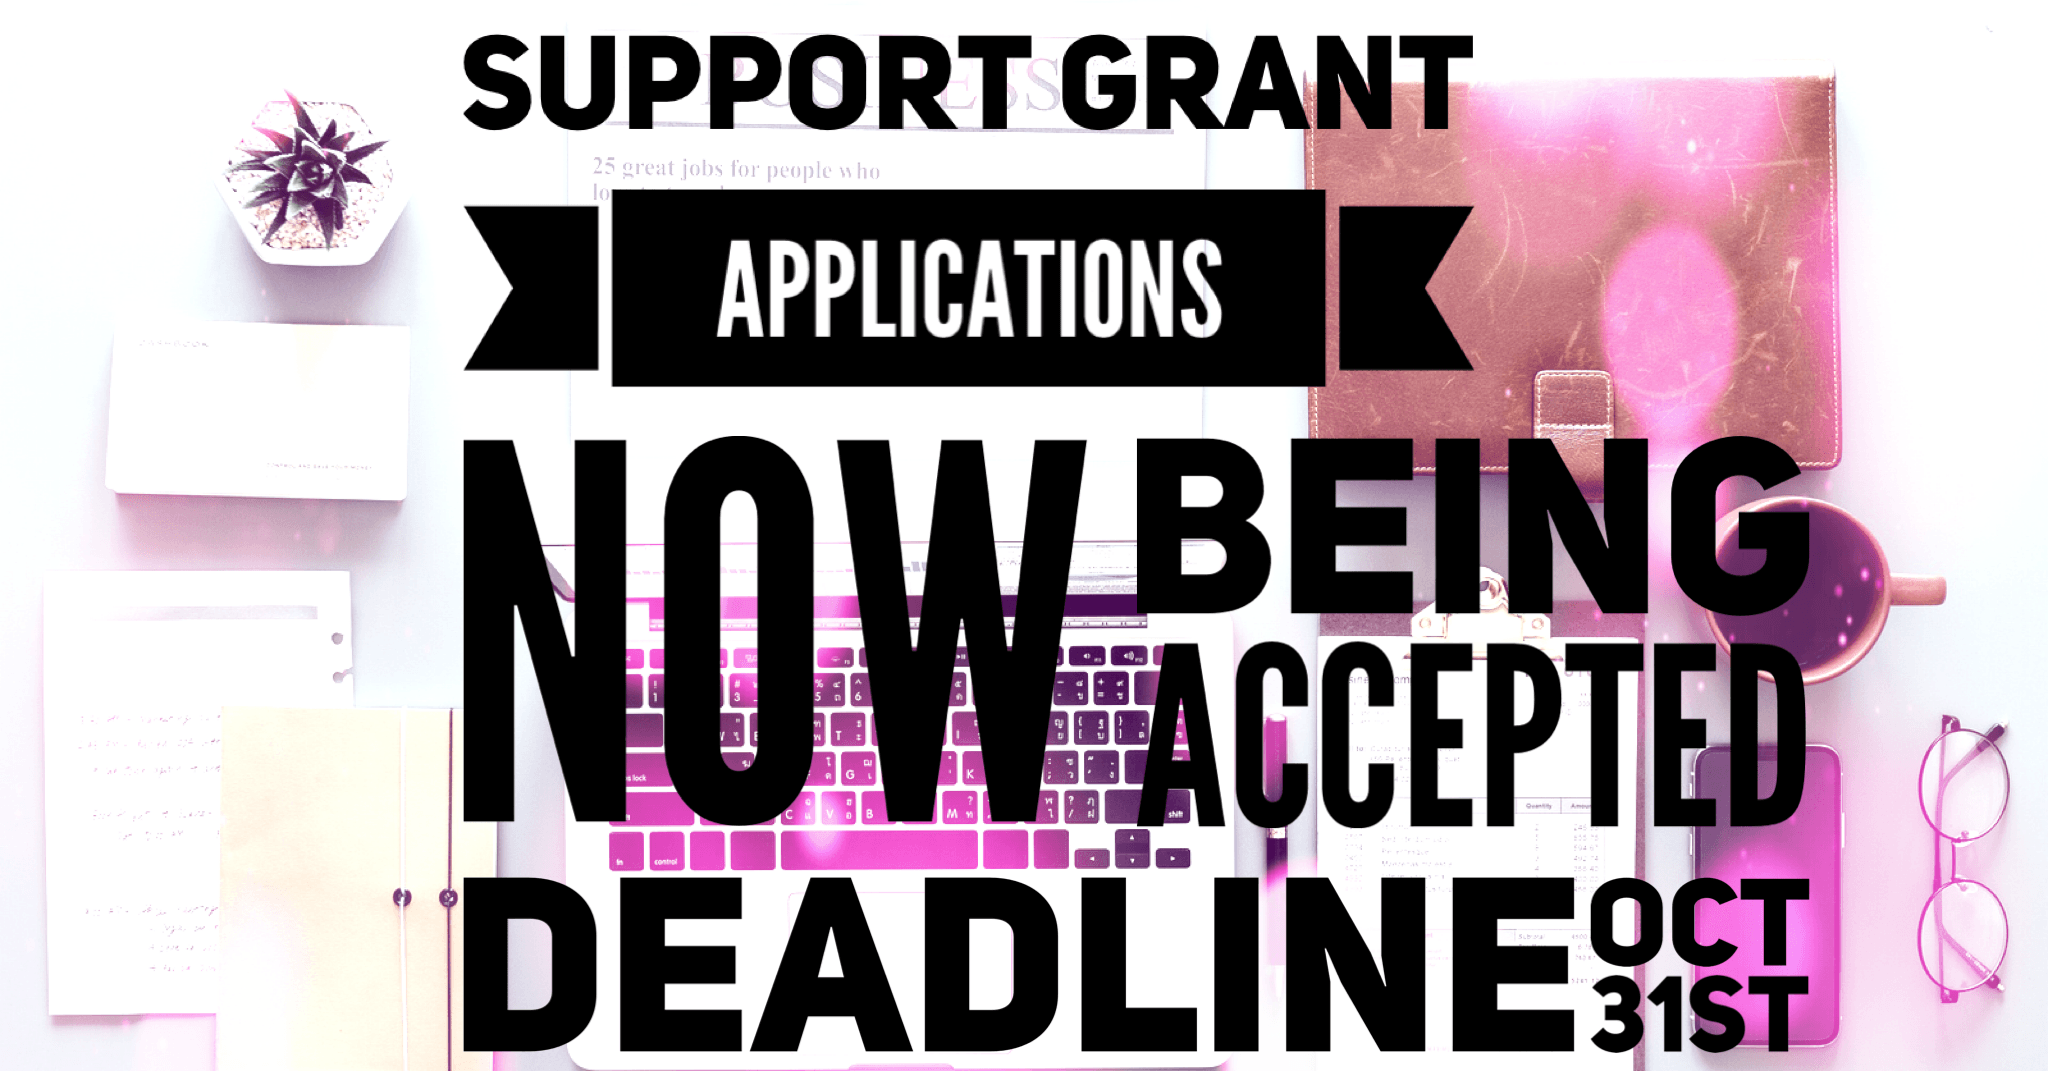 support grant applications deadline oct 31